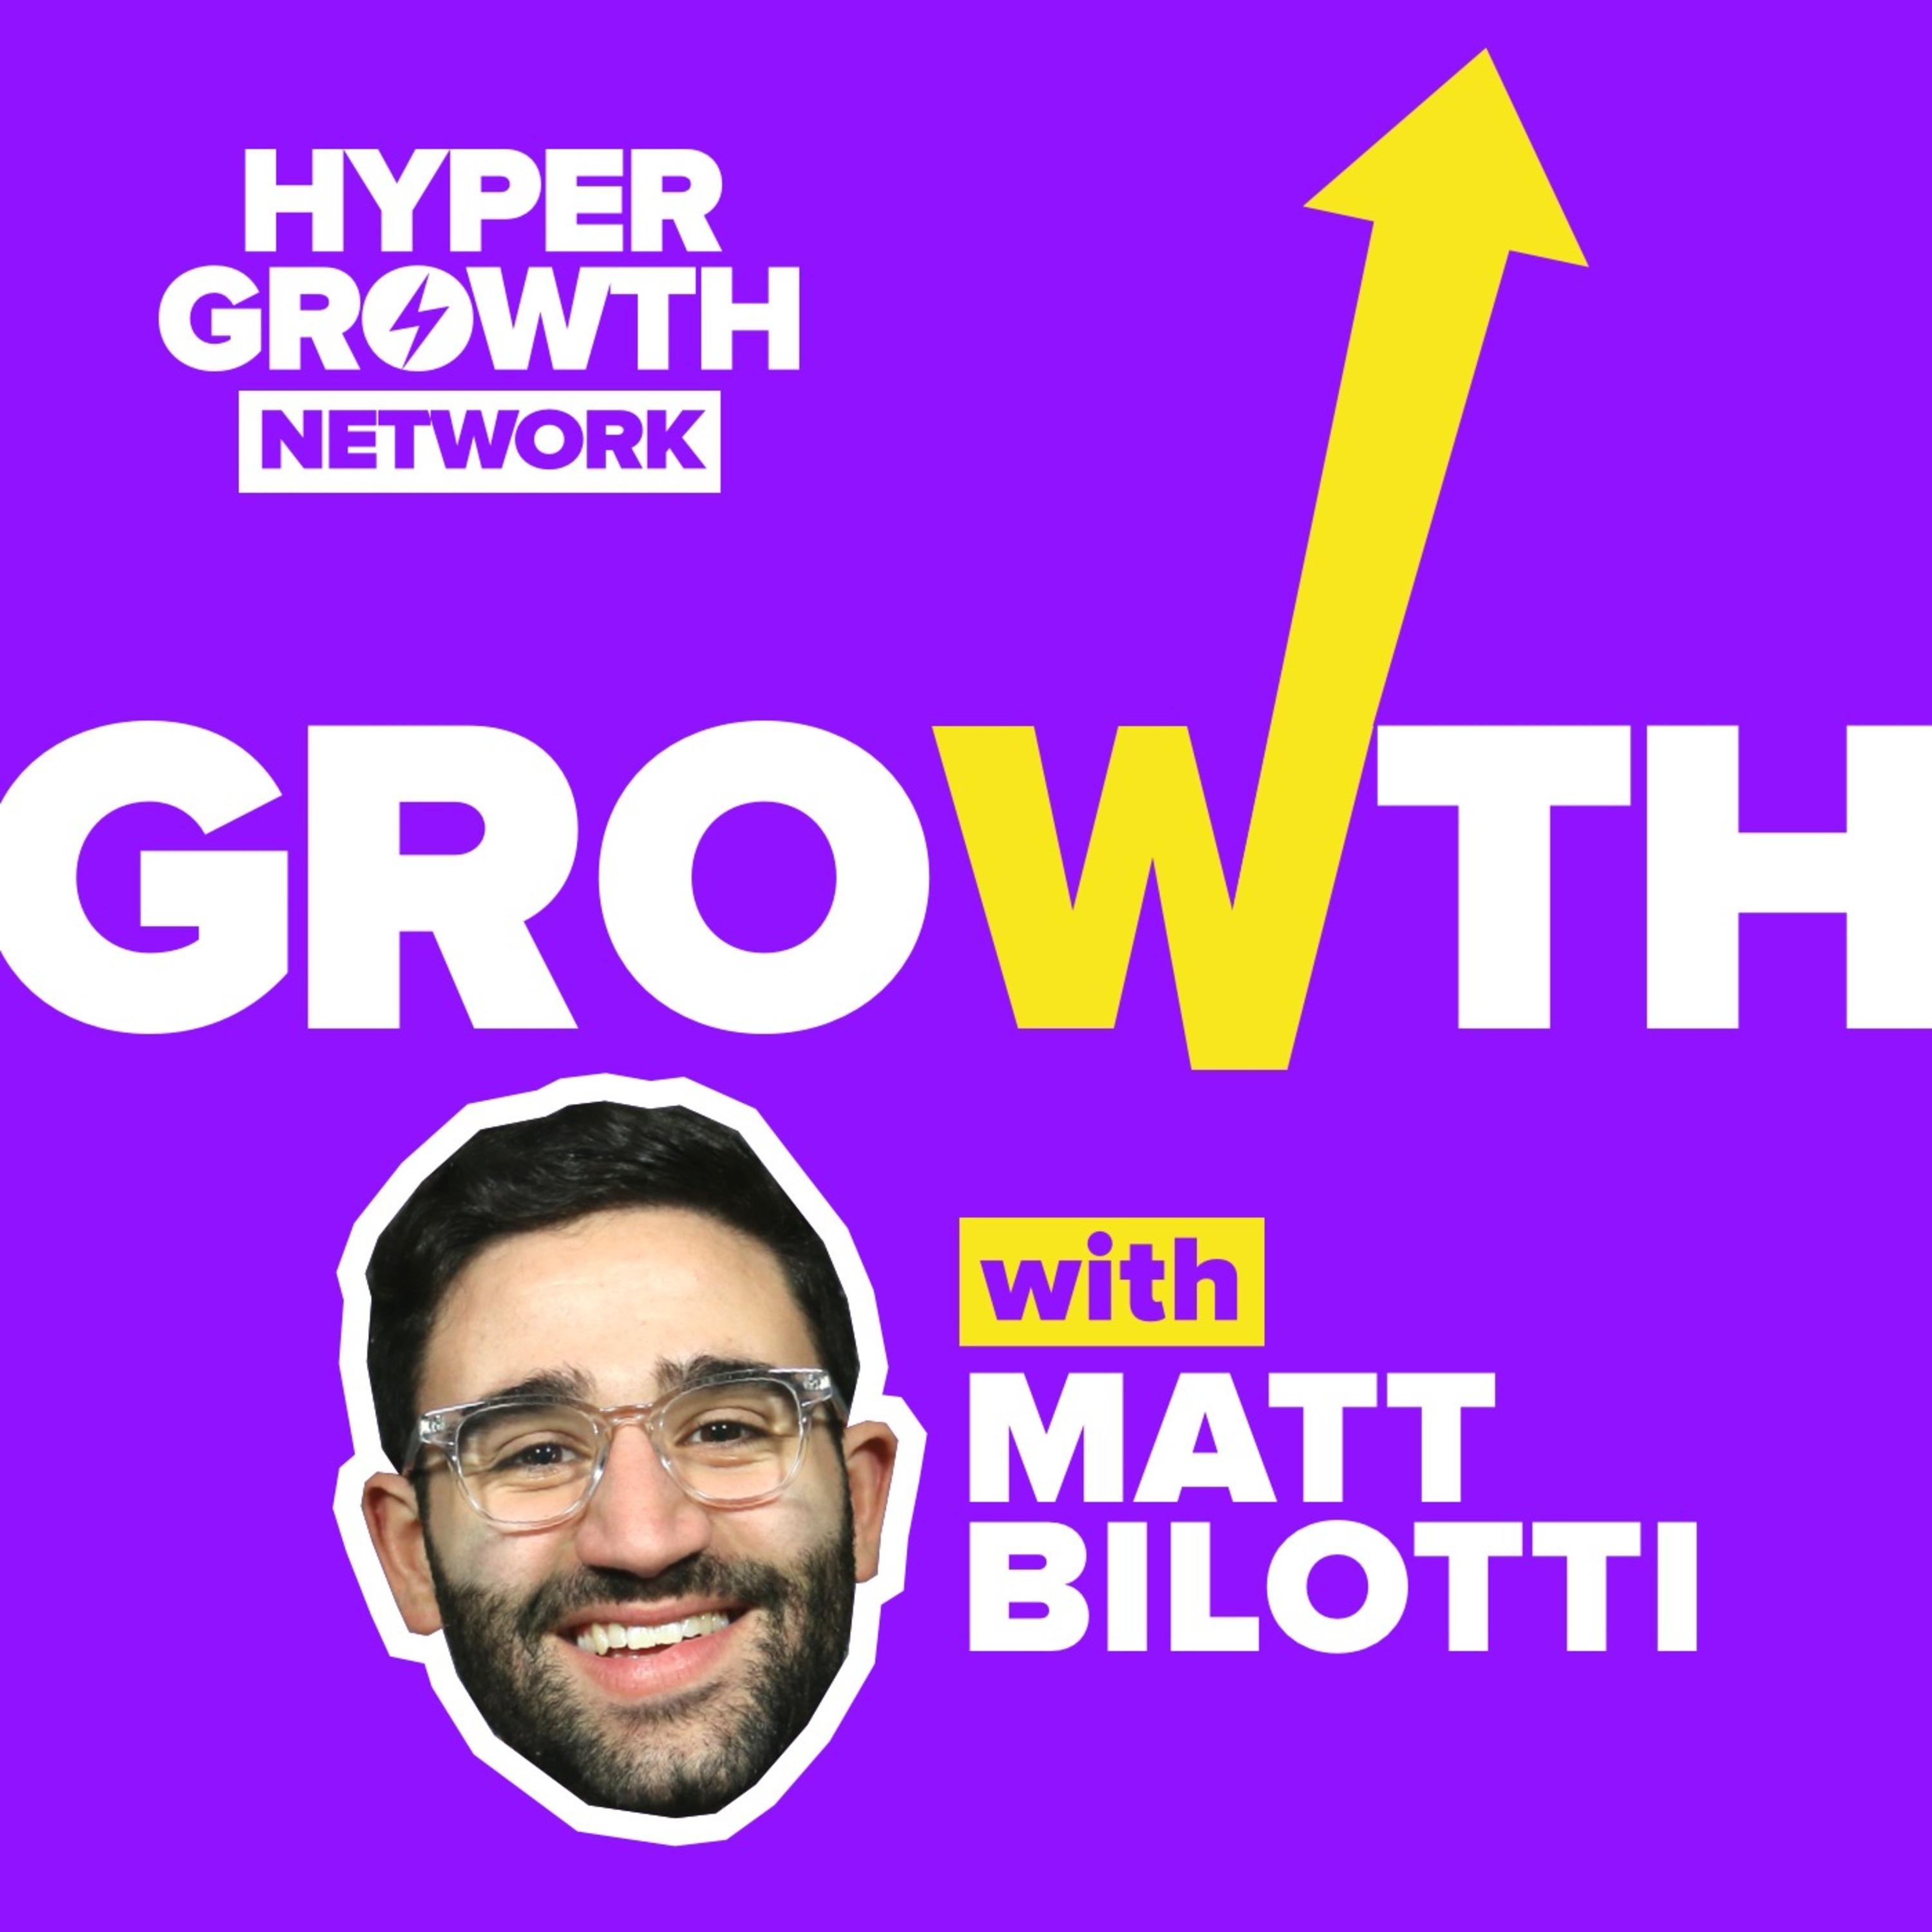 How to Spend 10X Less But Do 10X More. Drift's Mad Scientist & VP of Growth Guillaume Cabane Weighs In On Must-Have Tools.